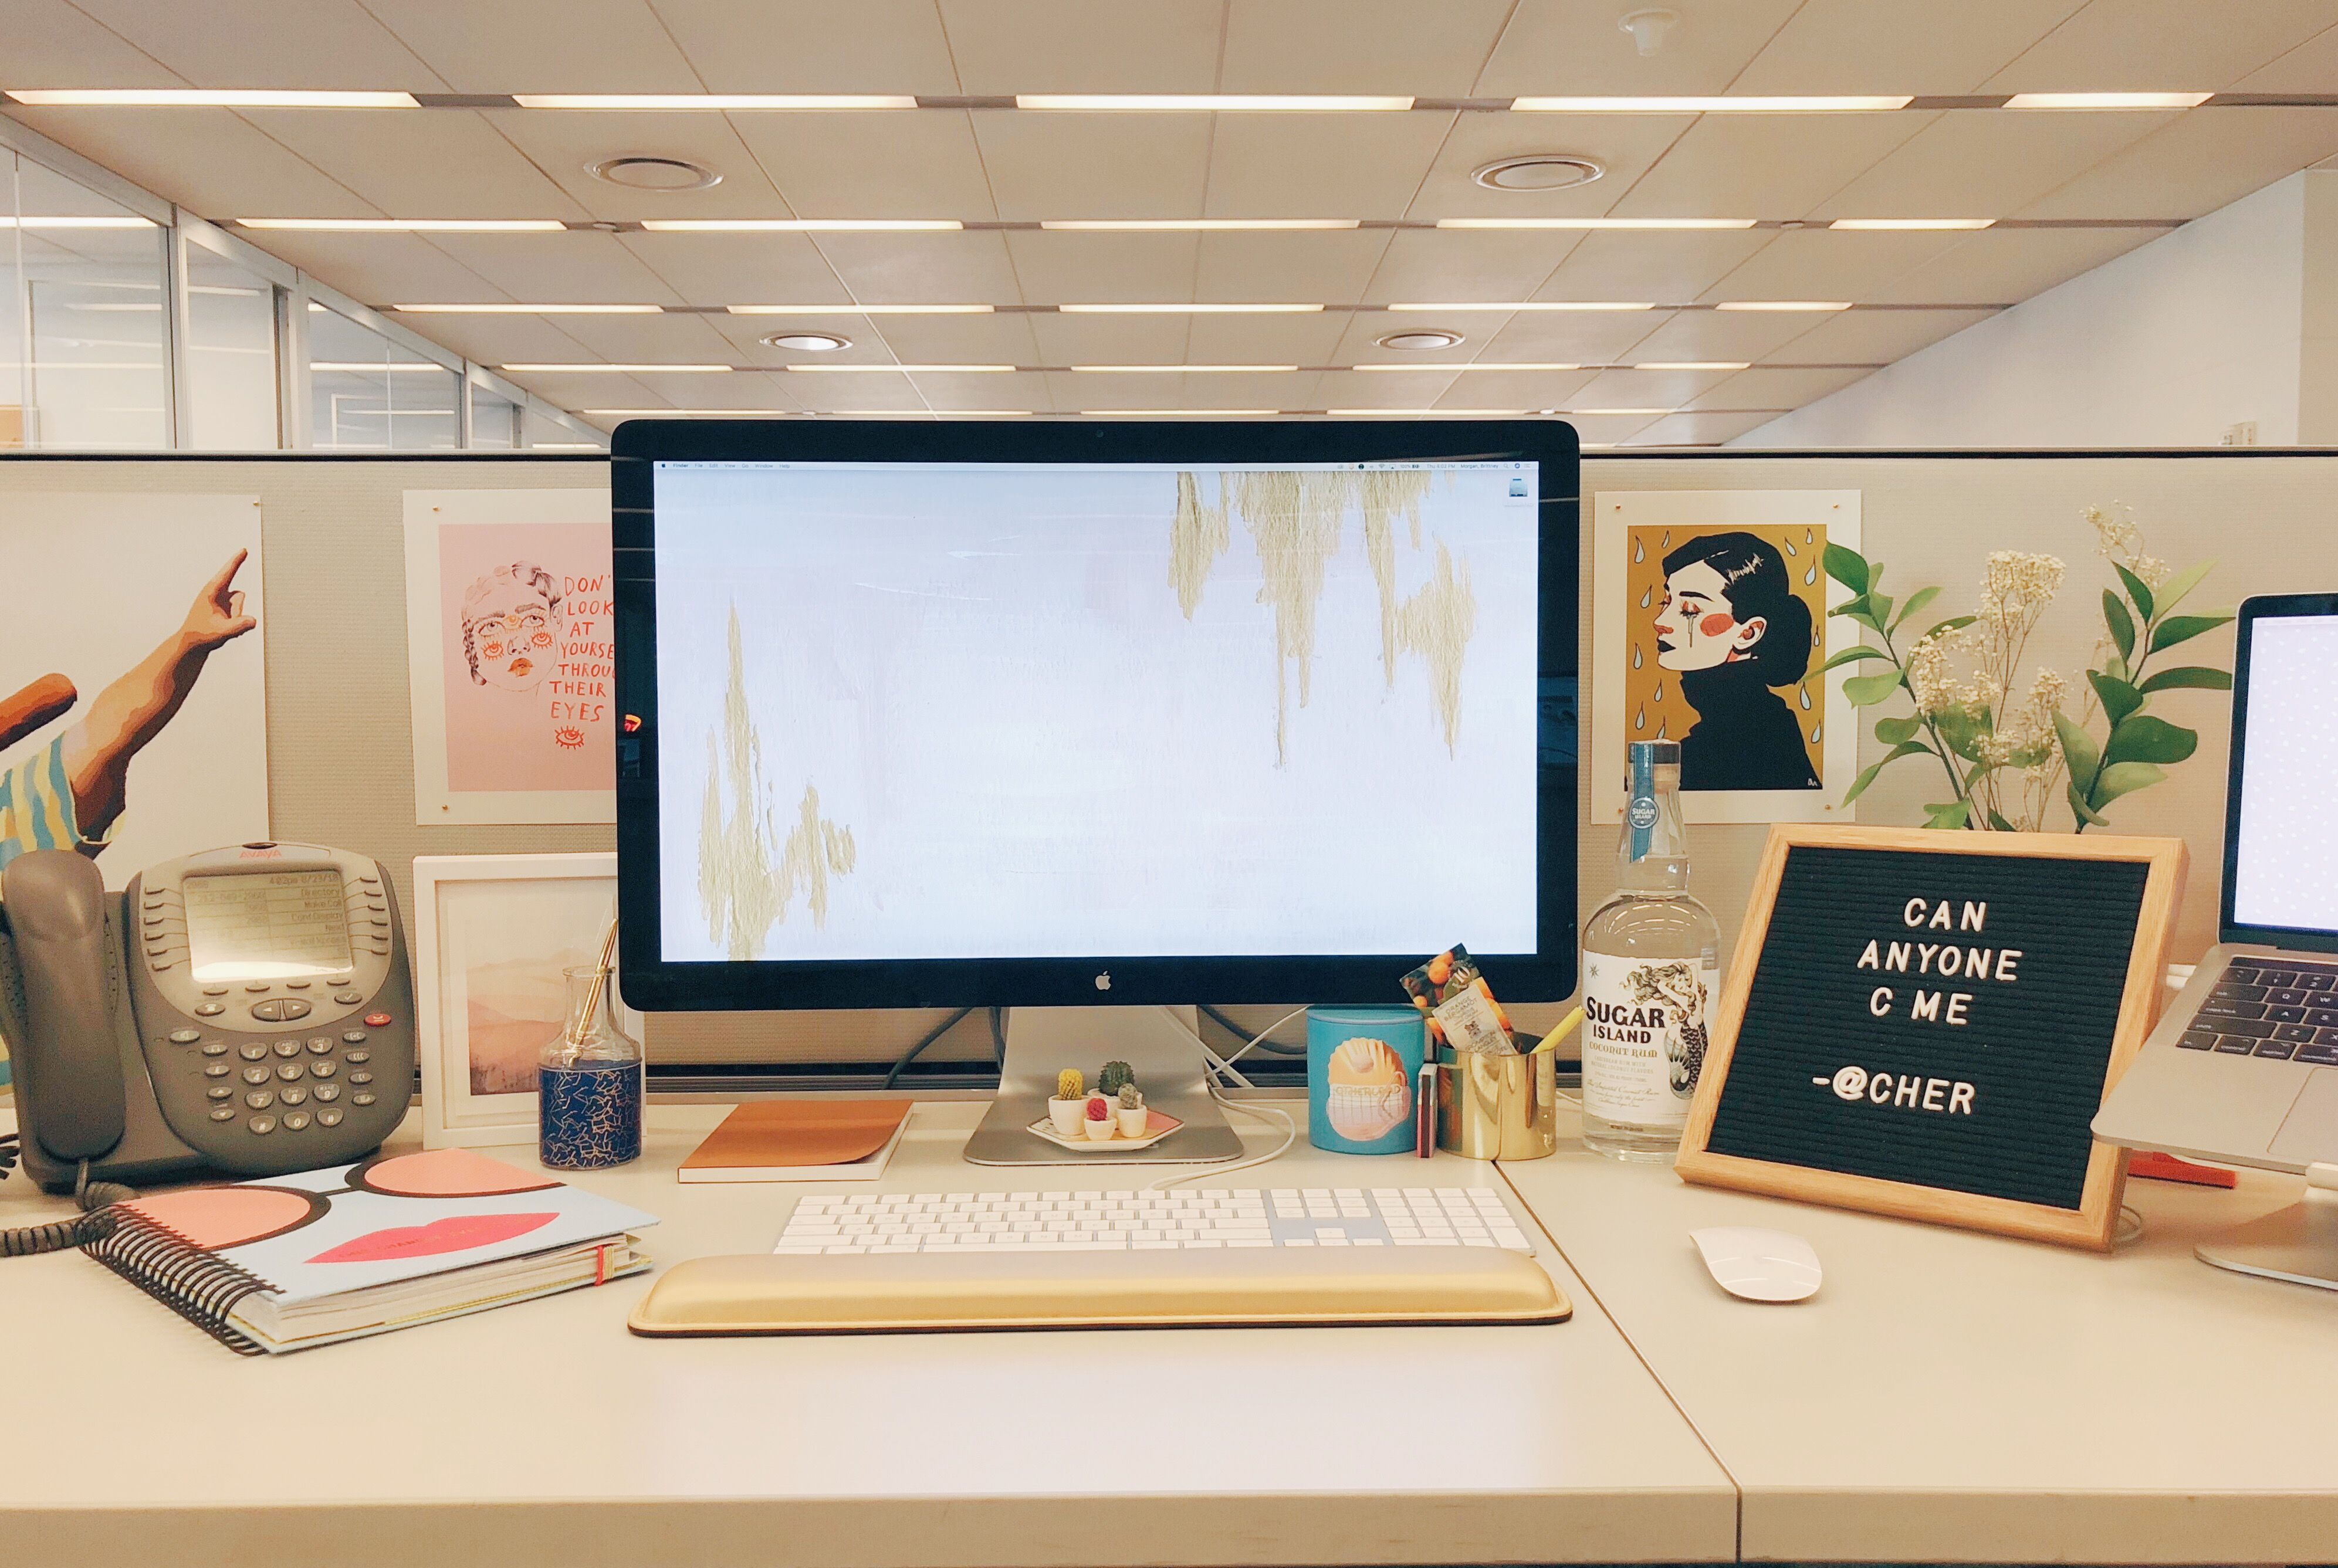 Decorate your office cubicle Feng Shui House Beautiful 10 Best Cubicle Decor Ideas In 2018 How To Decorate Your Cubicle